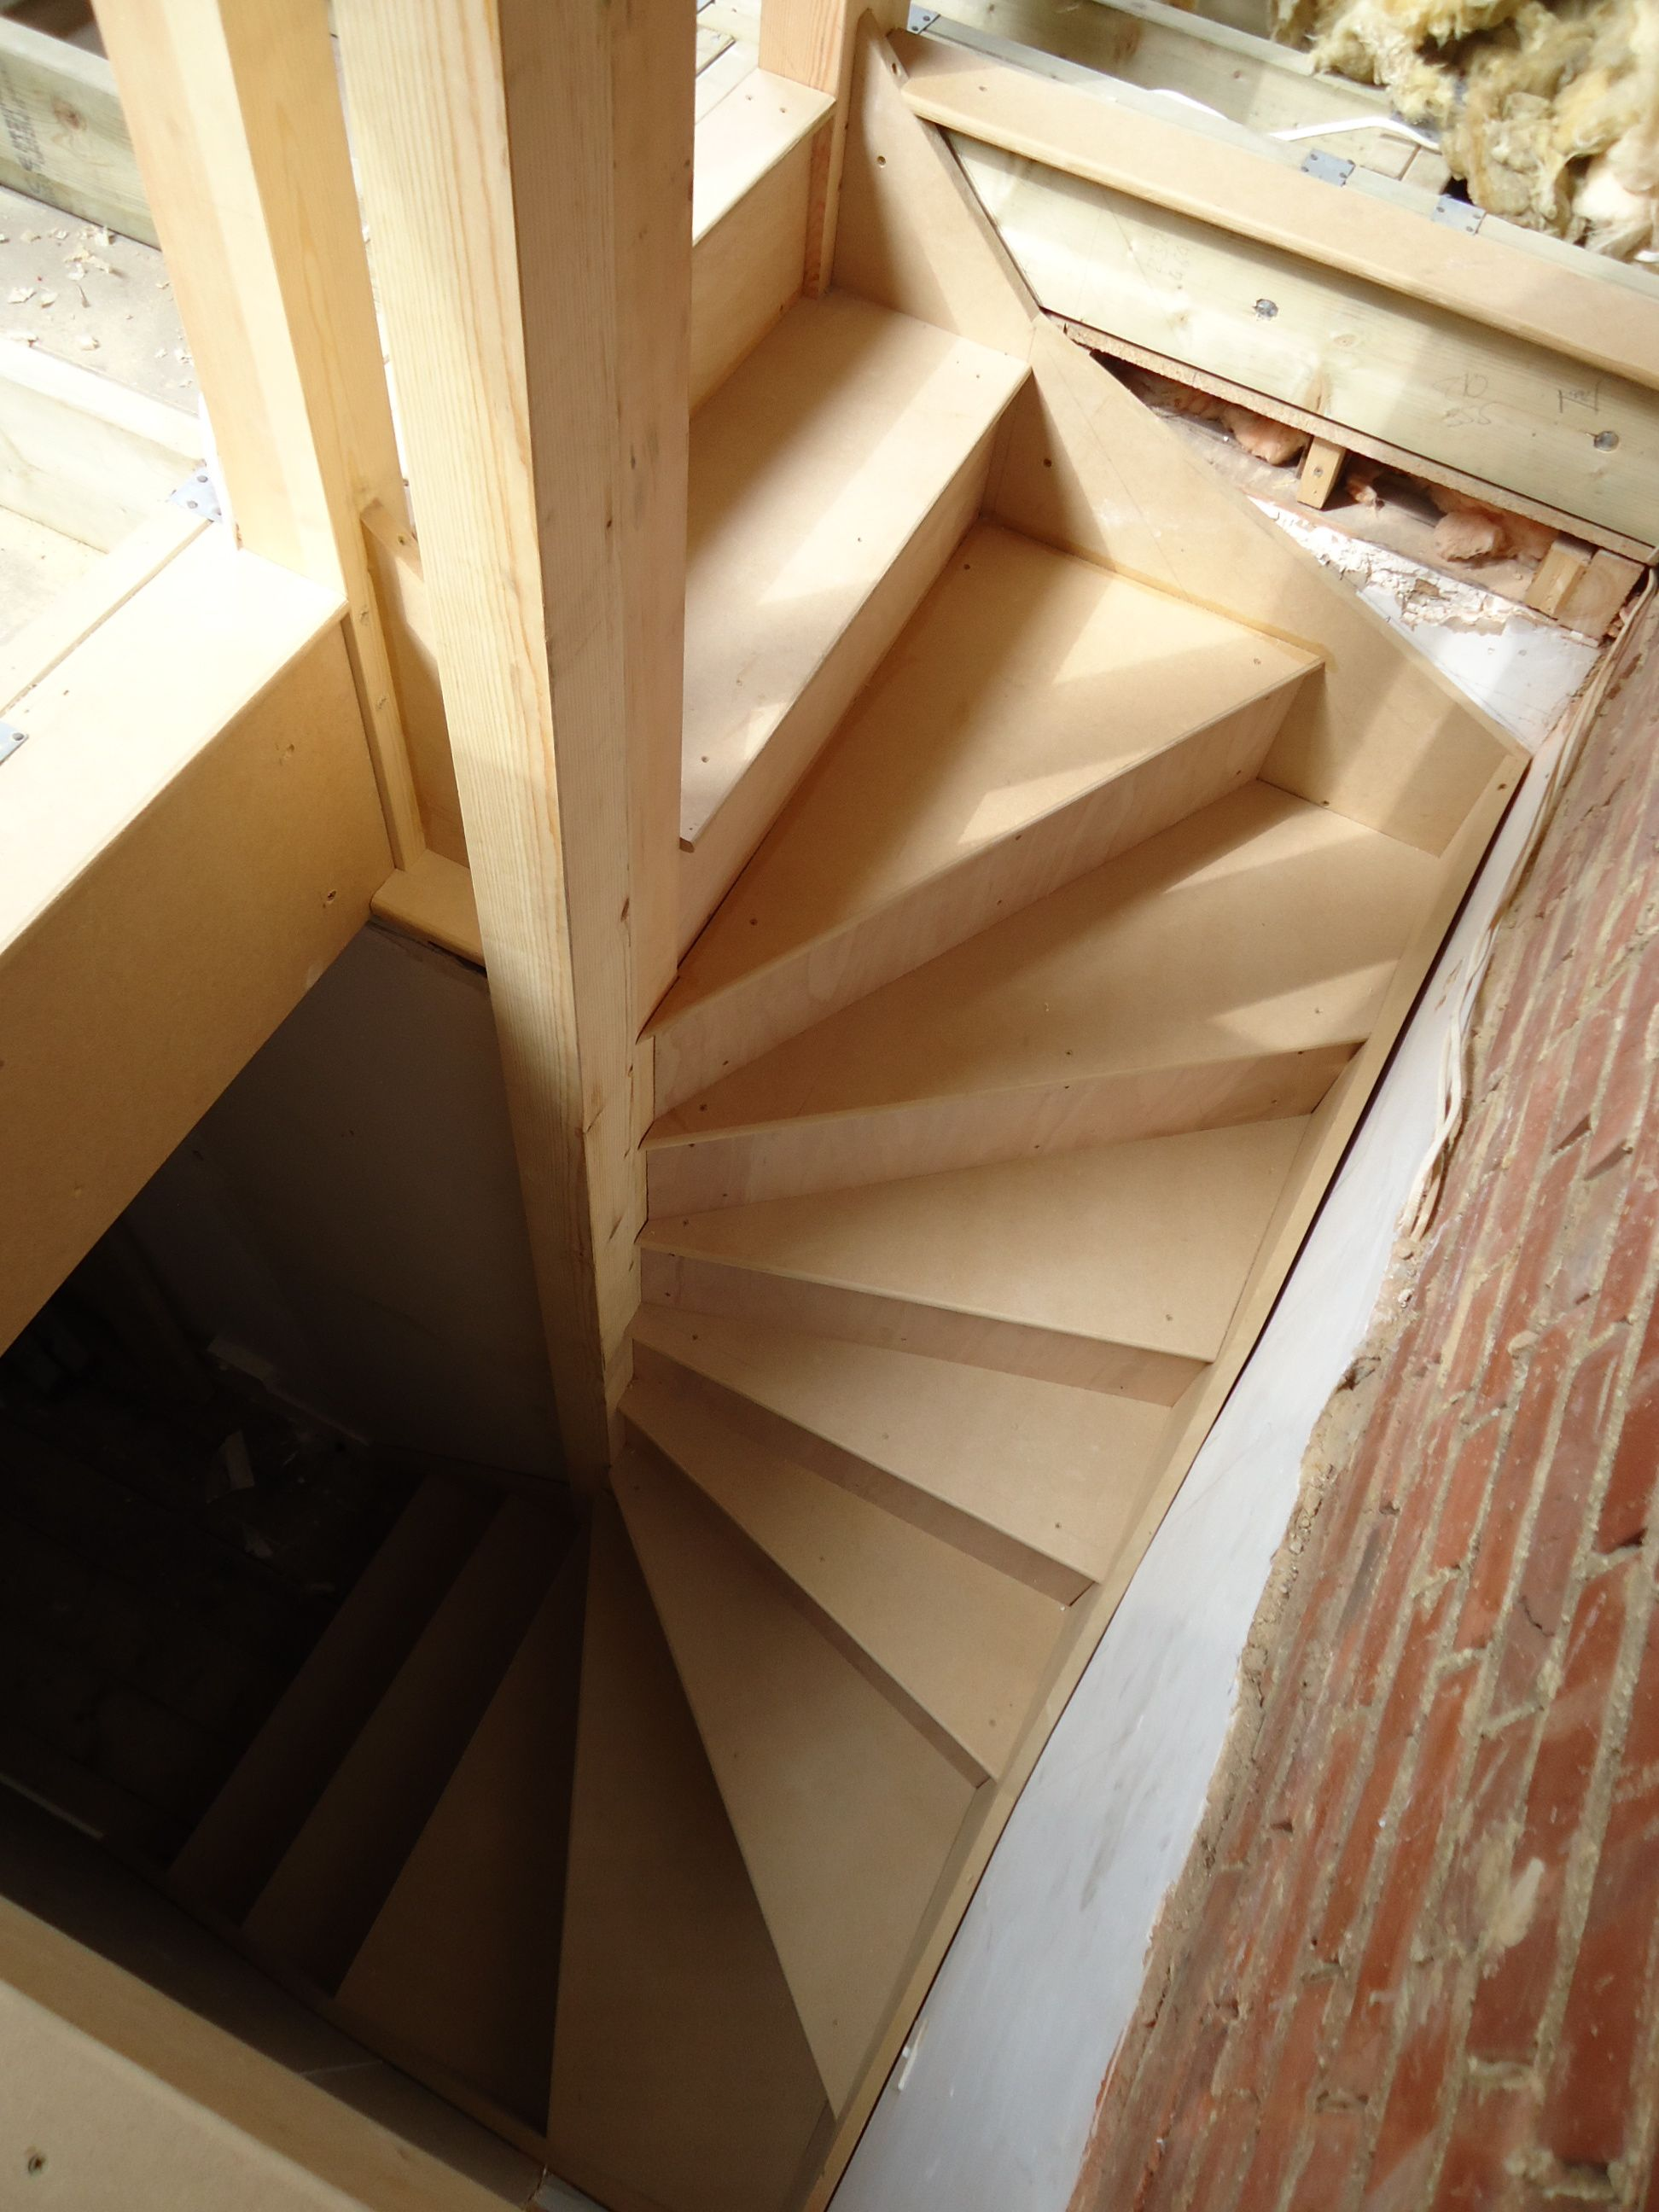 Mezzanine Loft Conversion loft conversion ideas stairs - google search | natuur nieuwe kamer